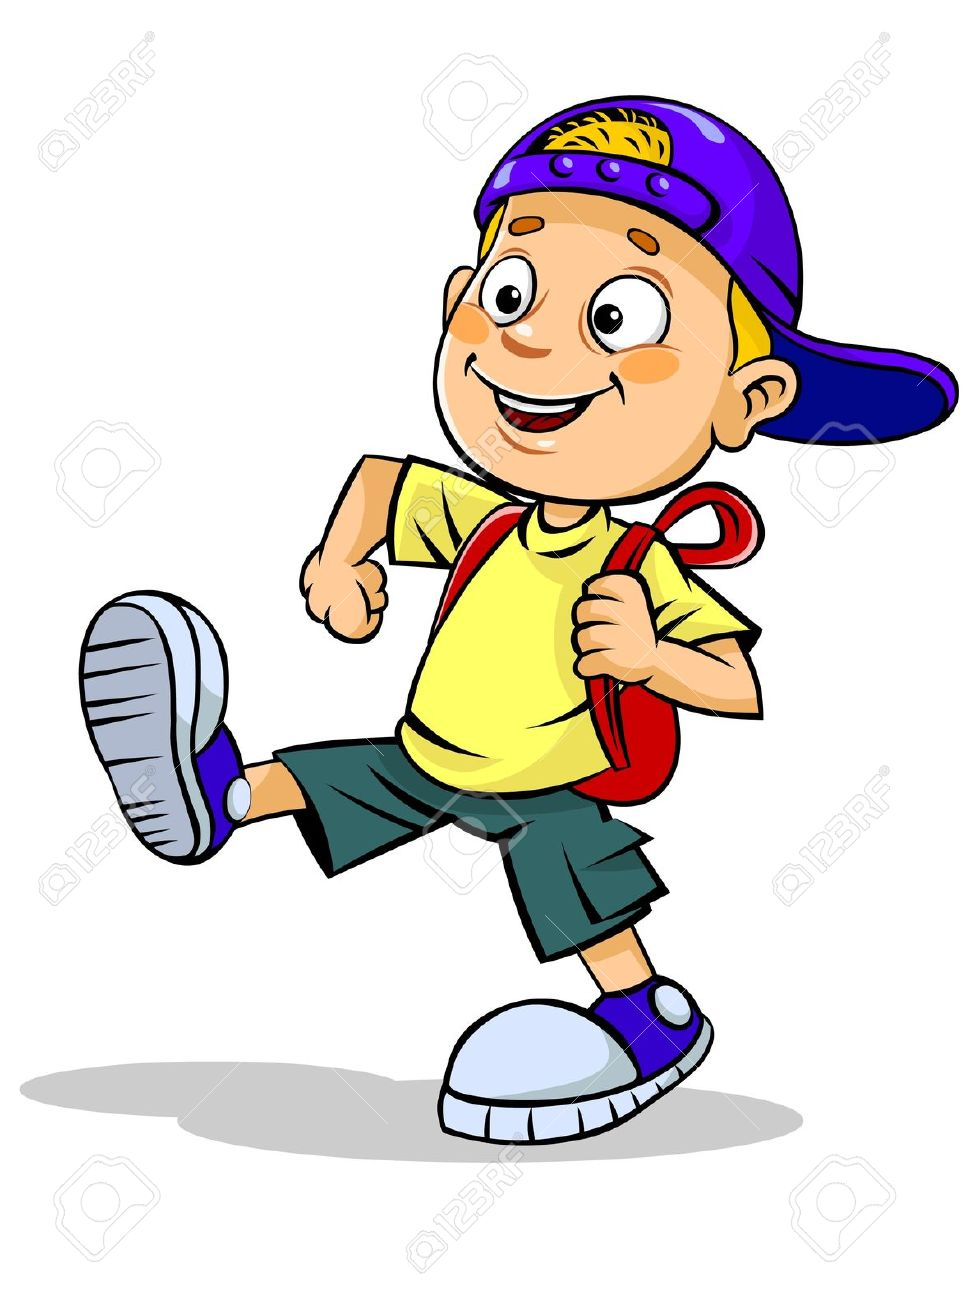 Boy walking clipart clip freeuse download Child Walking Clipart | Free download best Child Walking Clipart on ... clip freeuse download